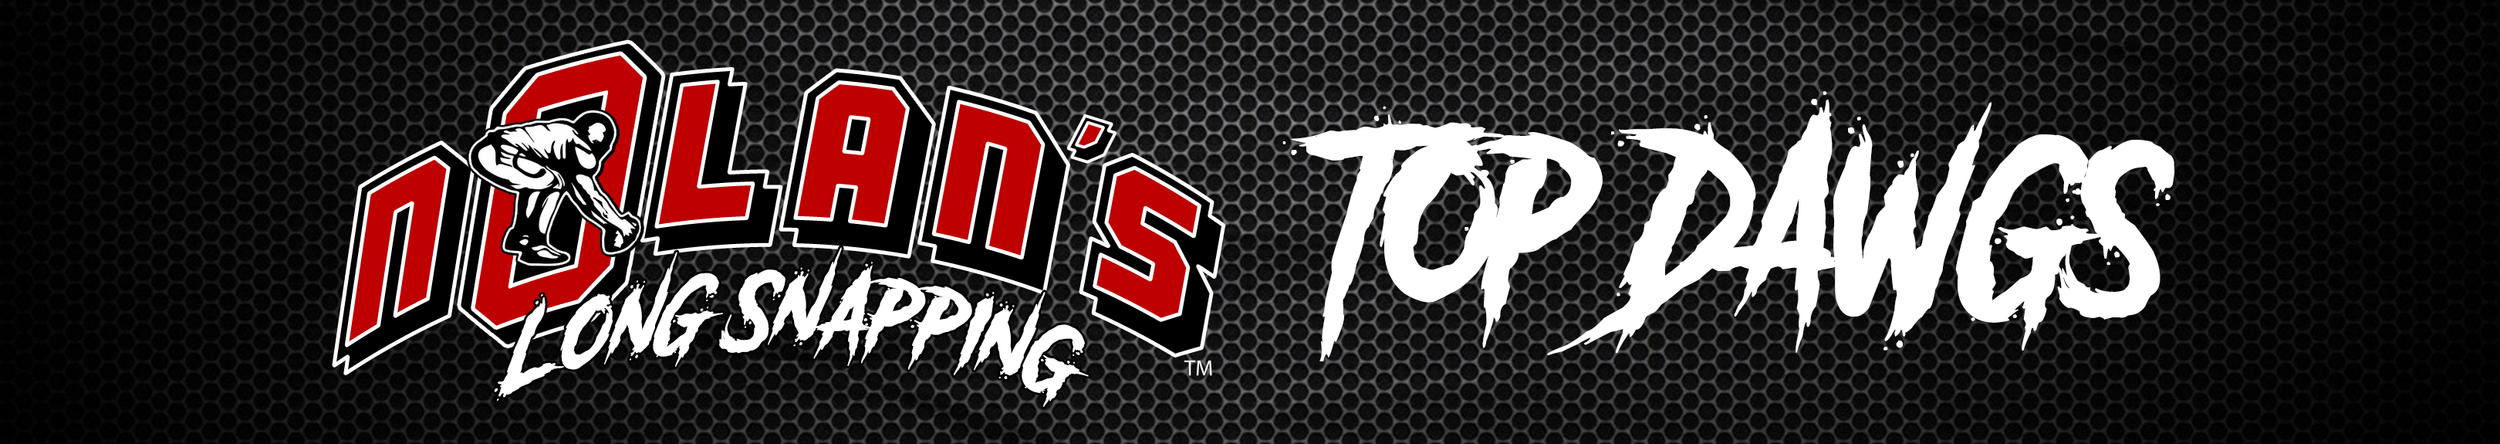 Nolan's-TOP-Dawgs-BANNER.png